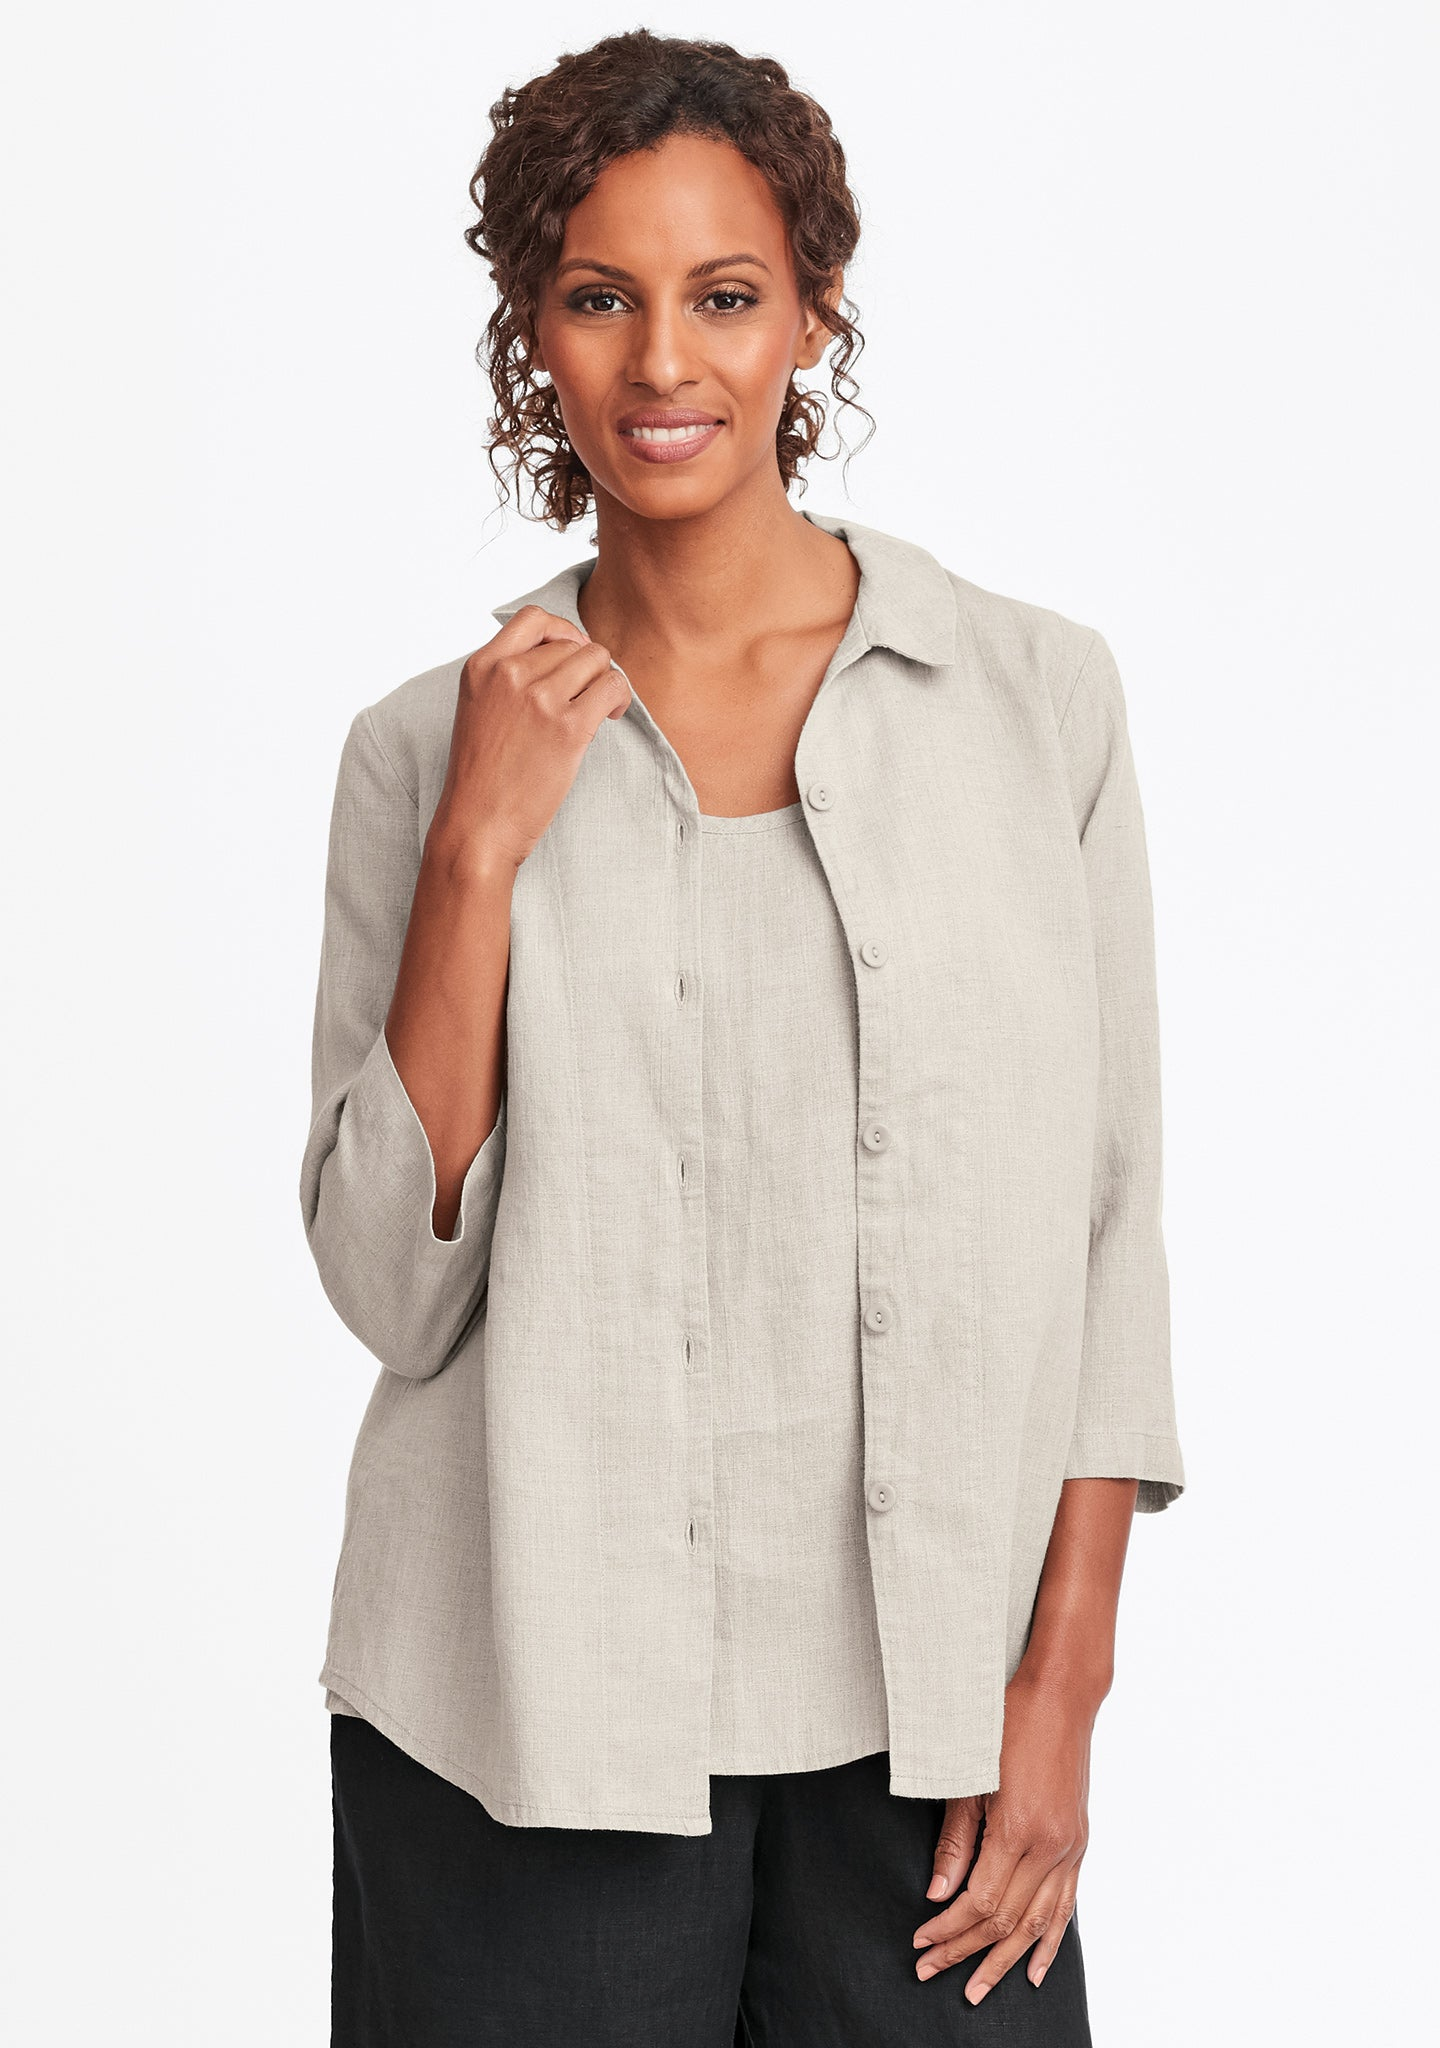 in-line blouse linen button down shirt natural